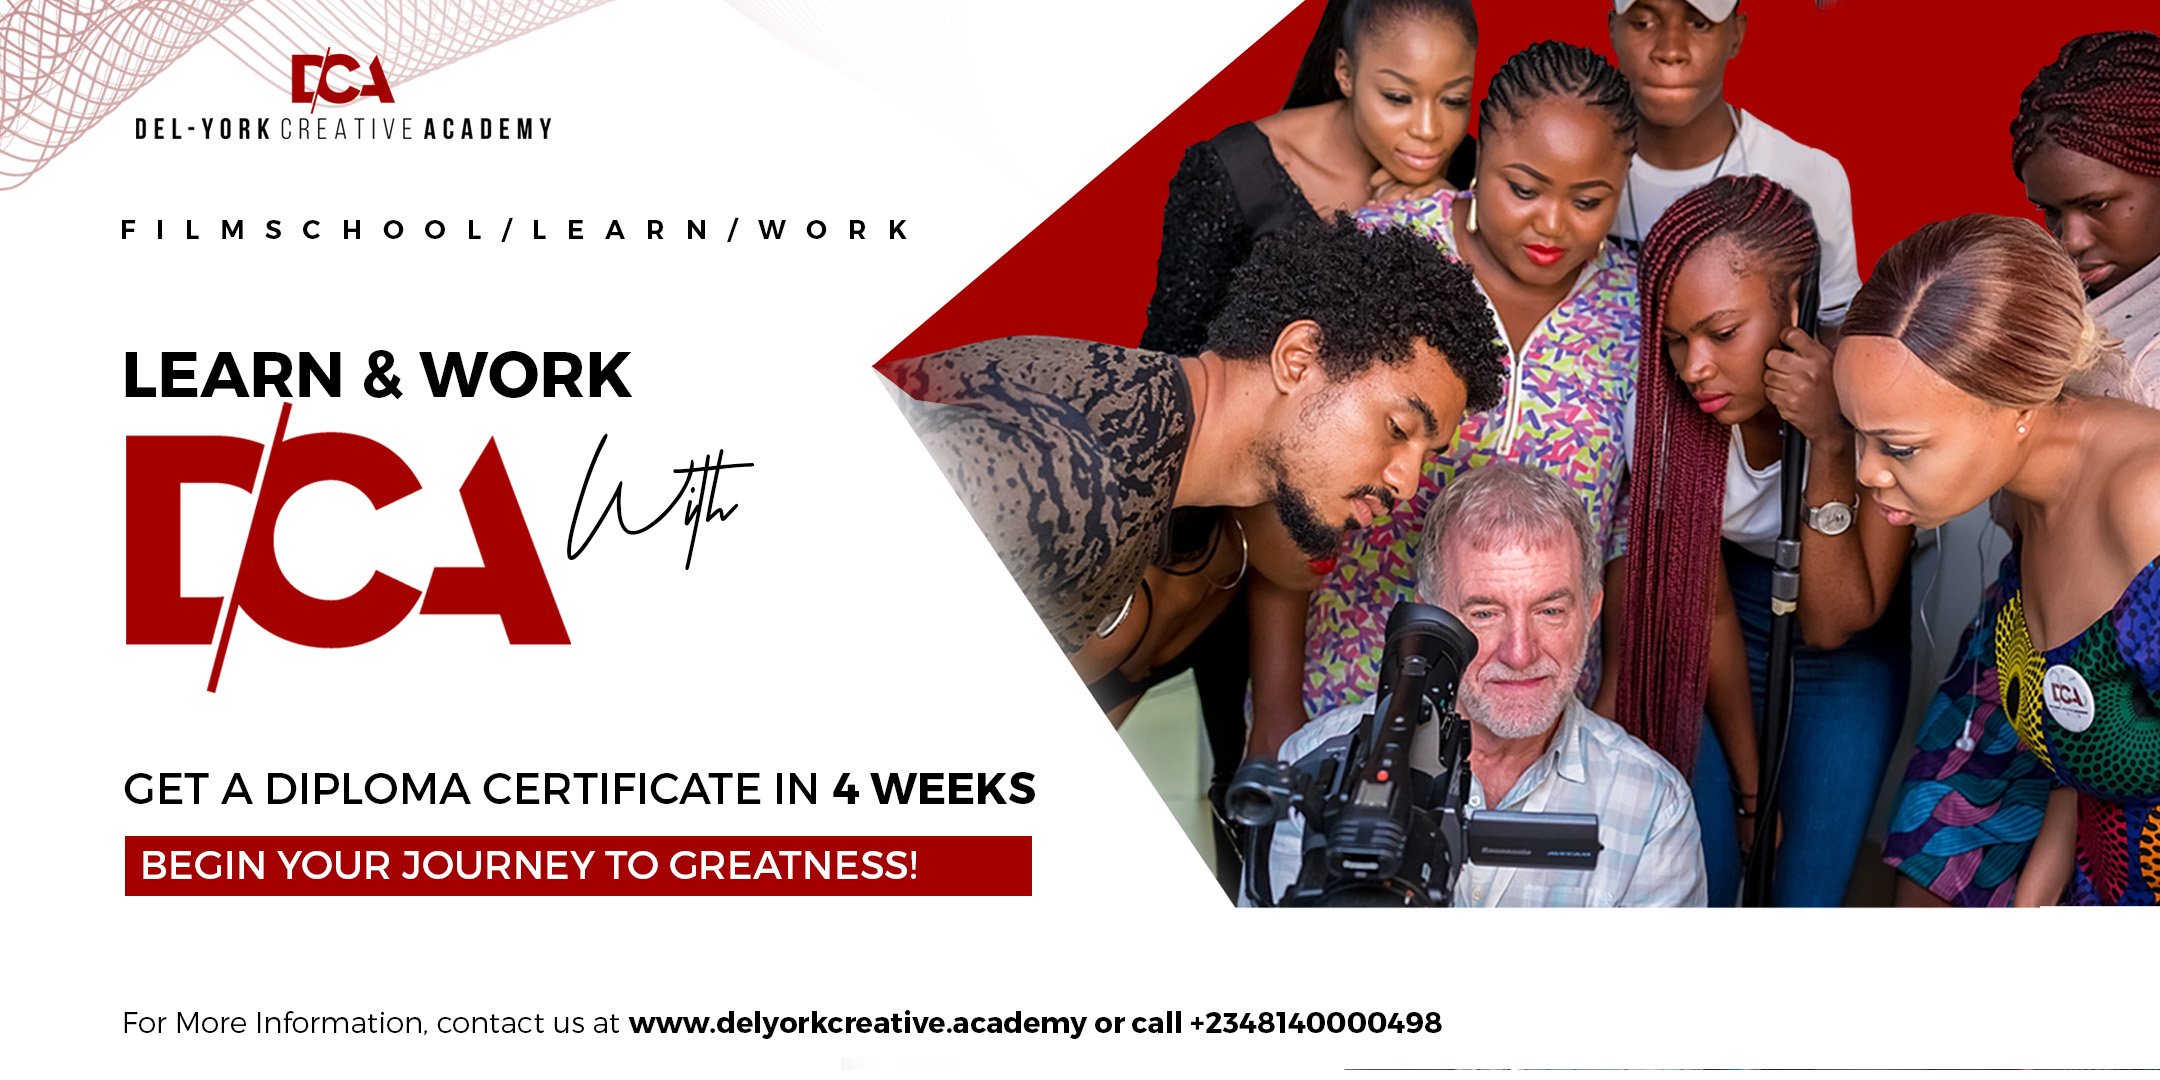 DEL-YORK CREATIVE ACADEMY Post free event in Nigeria using tickethub.ng, buy and sell tickets to event